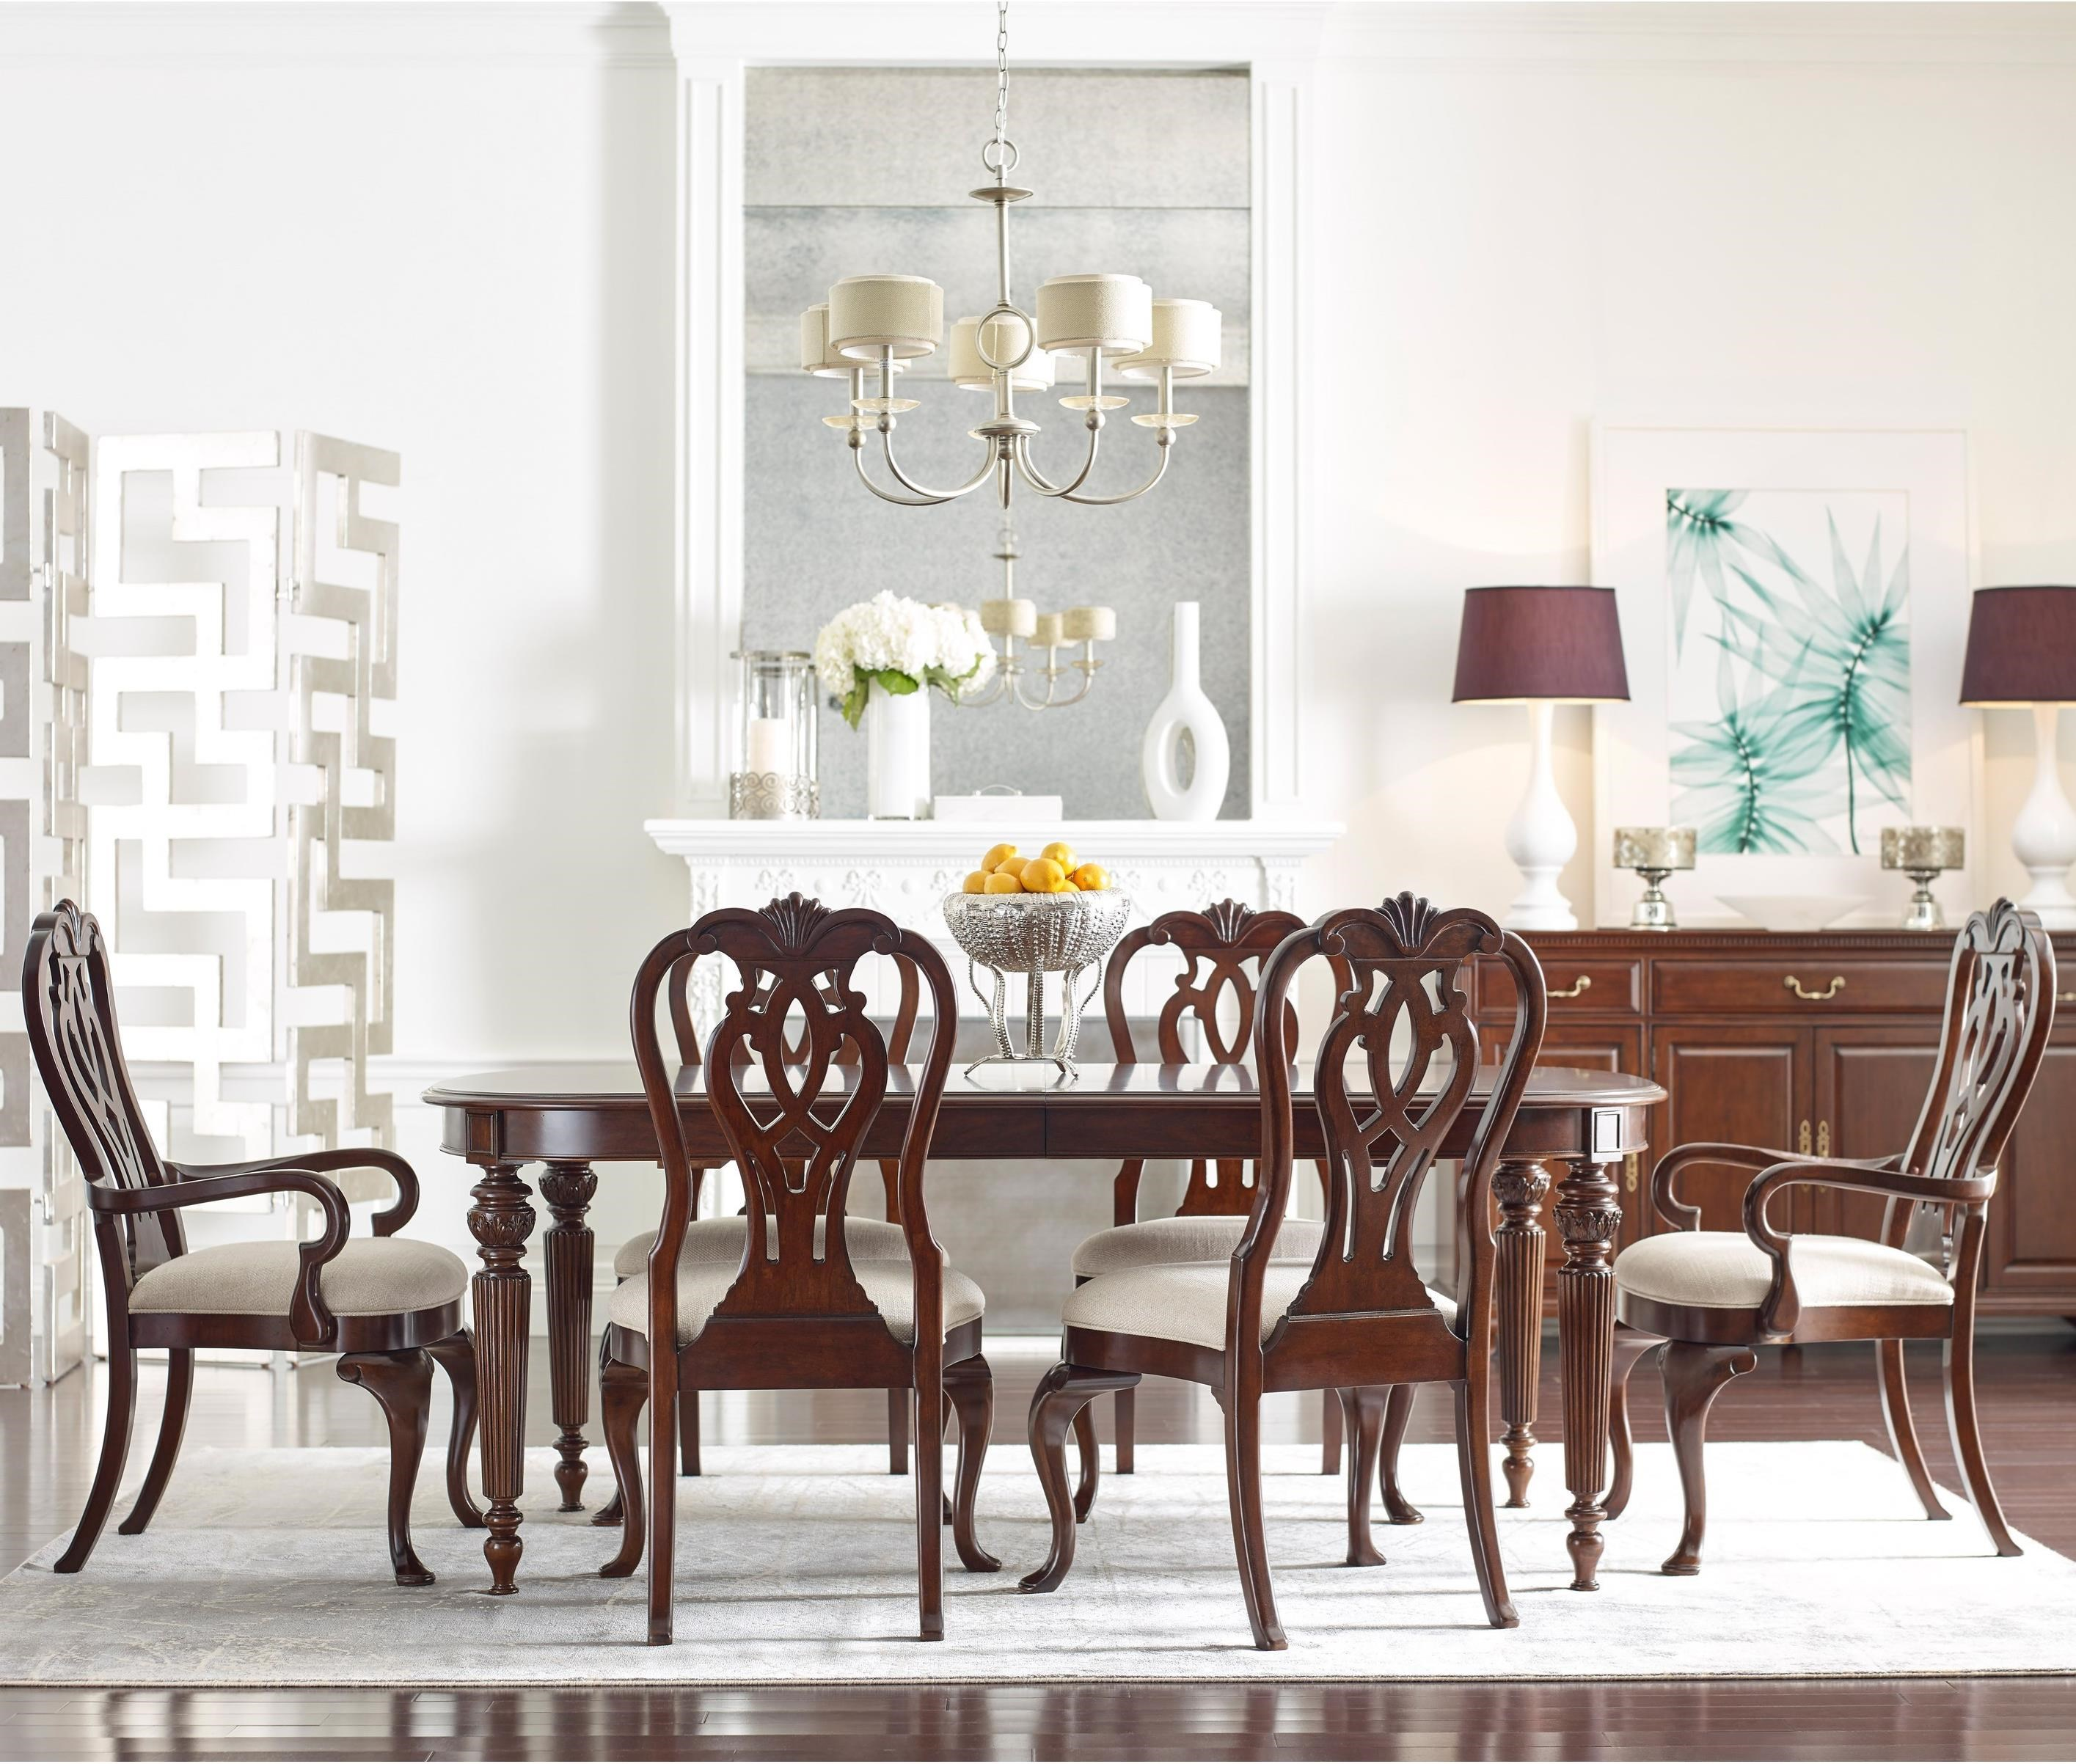 Kincaid Dining Room Set: Kincaid Furniture Hadleigh Seven Piece Formal Dining Set With Queen Anne Chairs